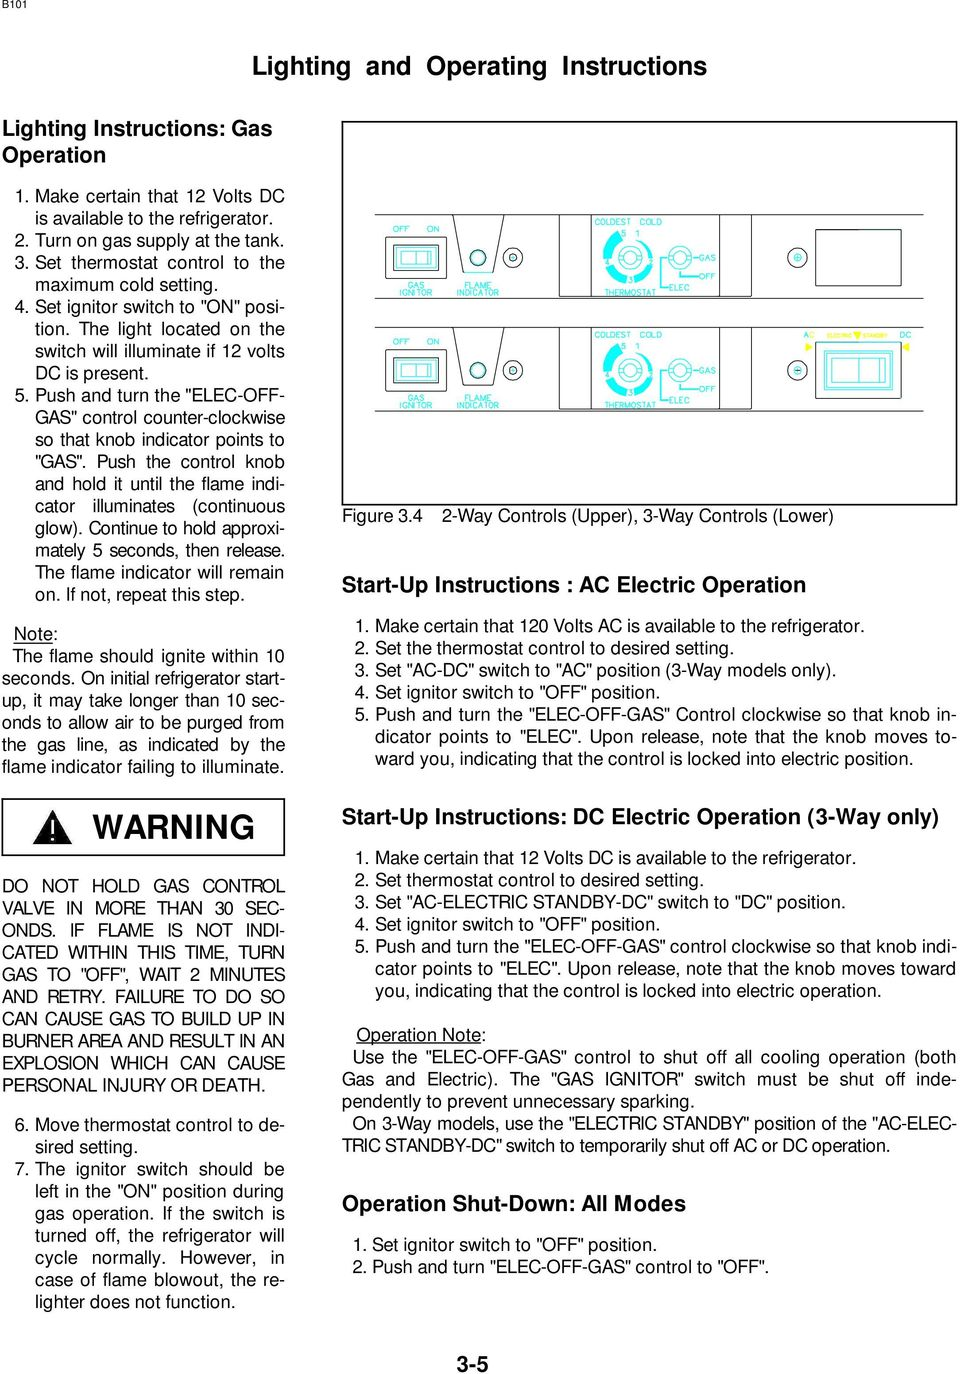 Norcold Repair Guide Models 442 443 452 453 462 463 482 Pdf 3 Way Switch Operation Push And Turn The Elec Off Gas Control Counter Clockwise So